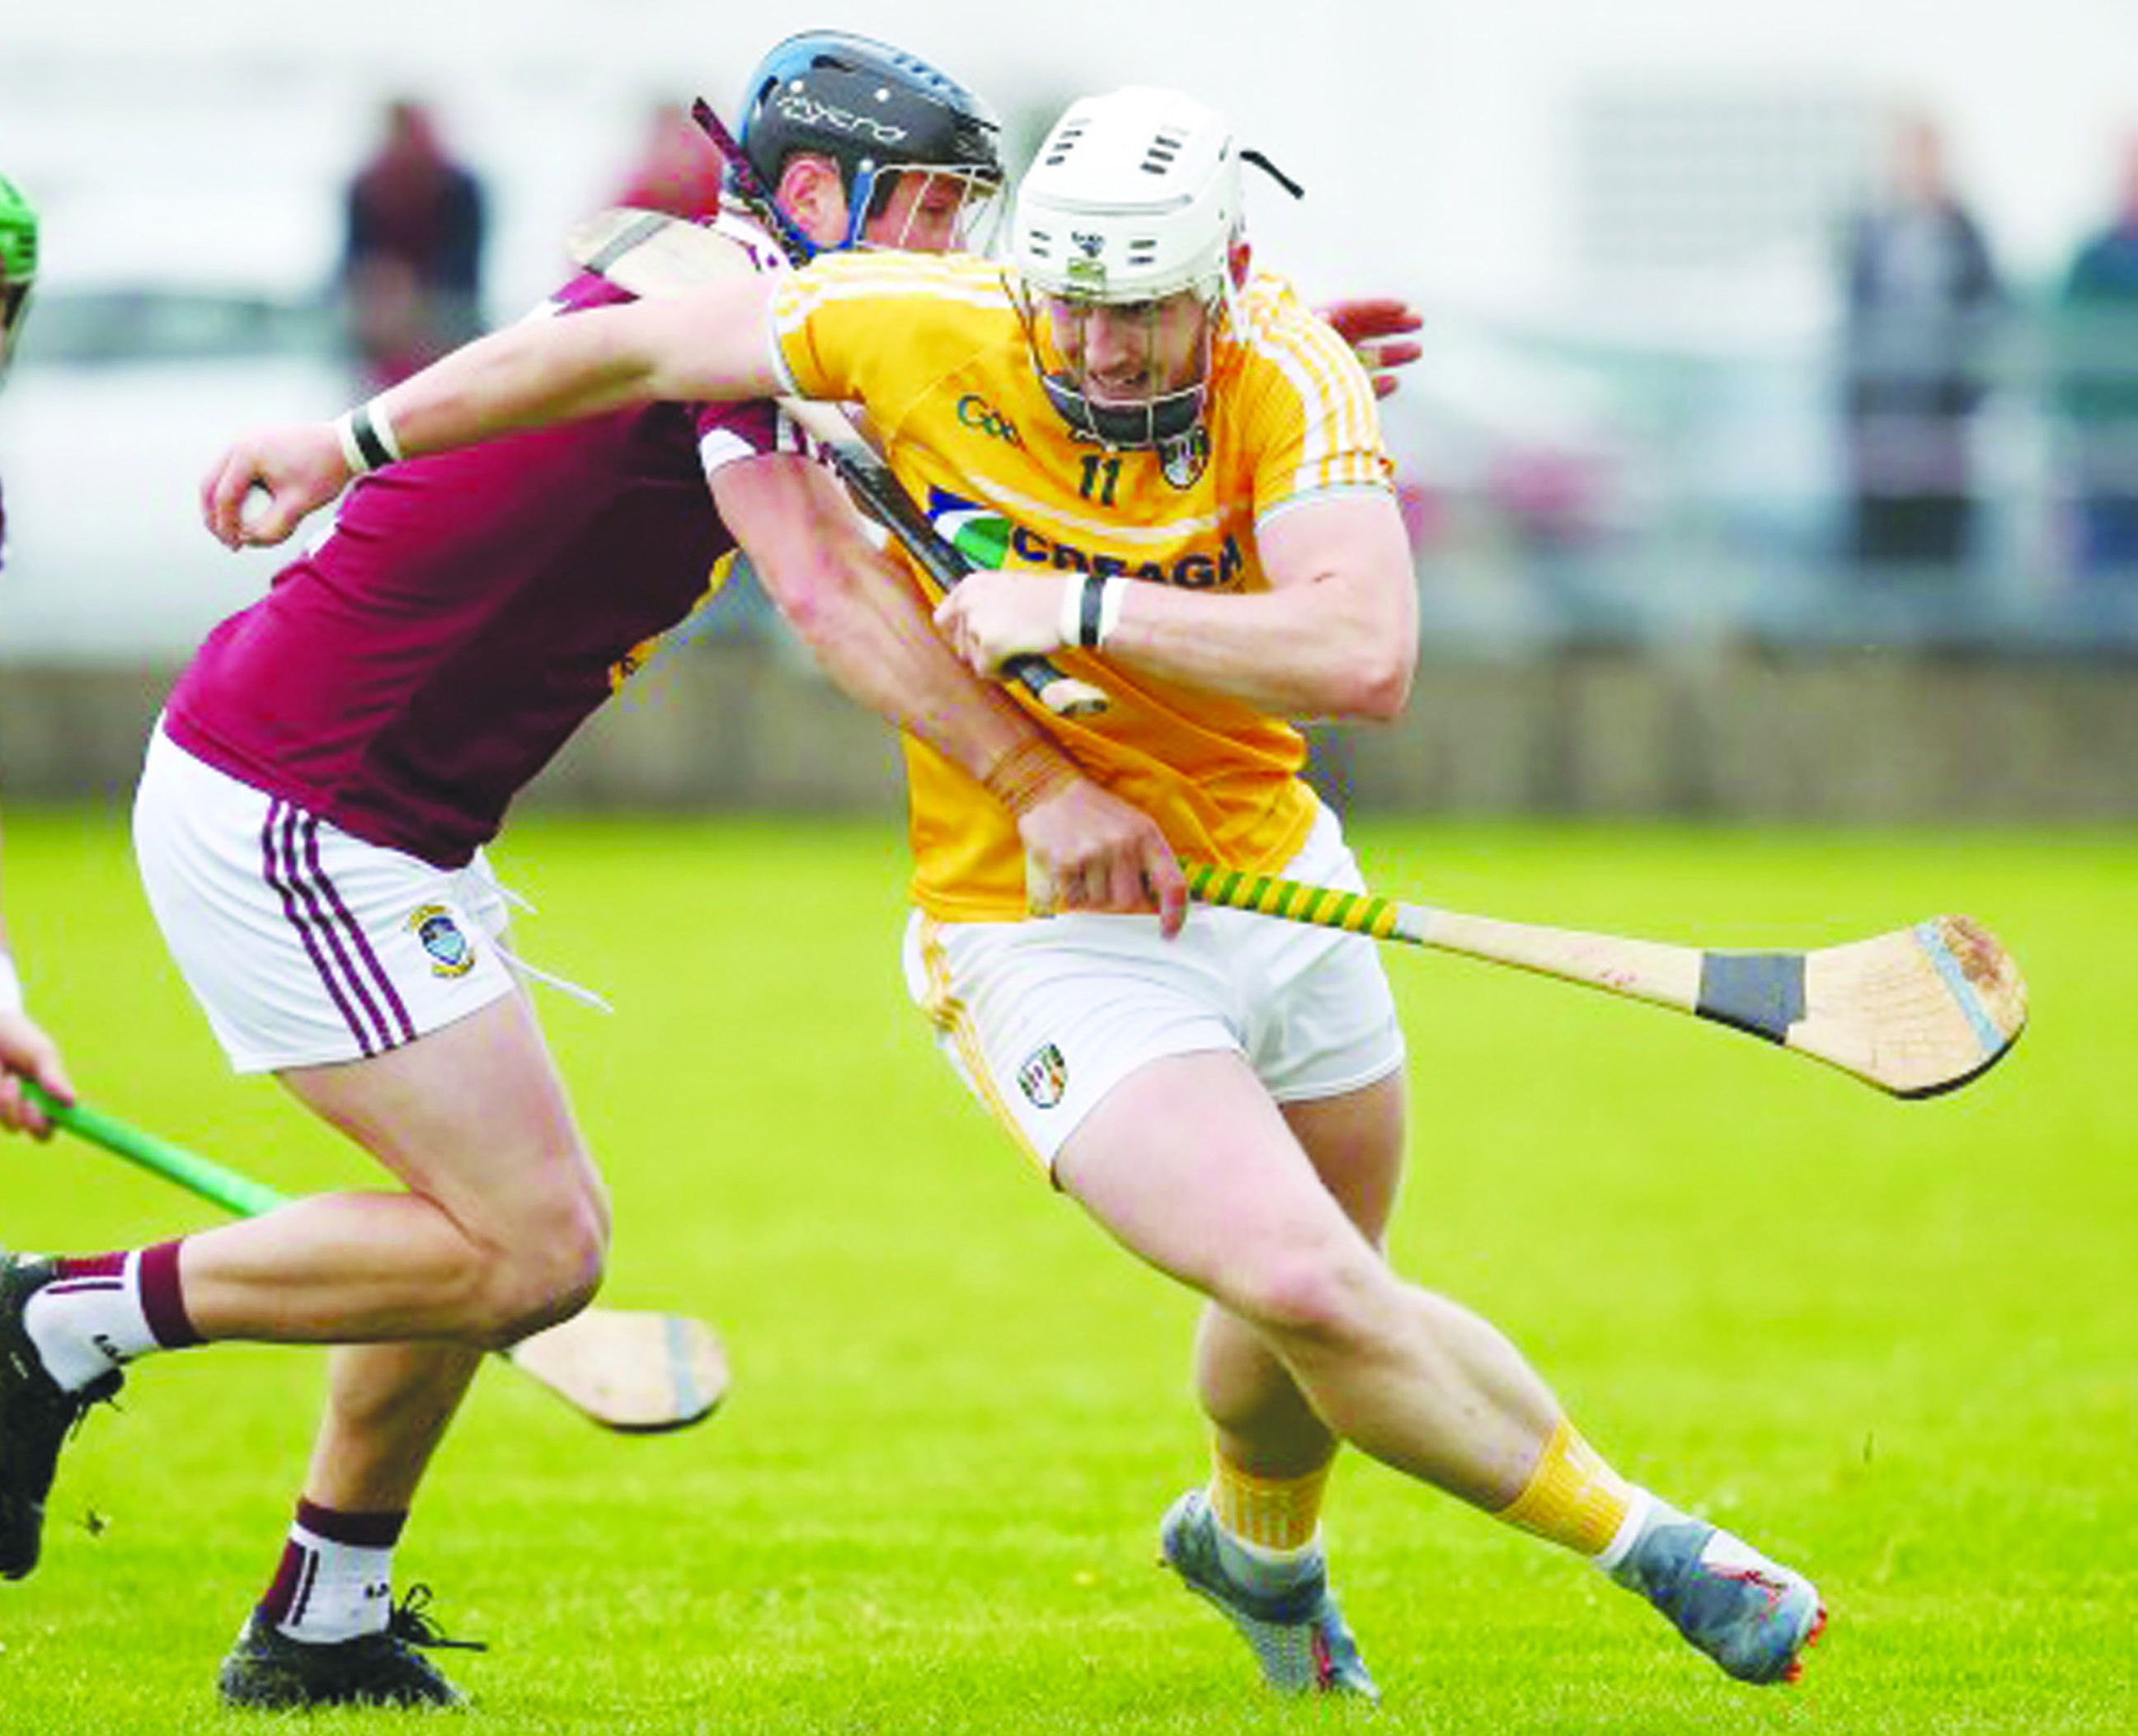 Antrim couldn't get past Westmeath in last year's McDonagh Cup game in Dunloy with the Garden County continuing their winning steak over the Saffrons